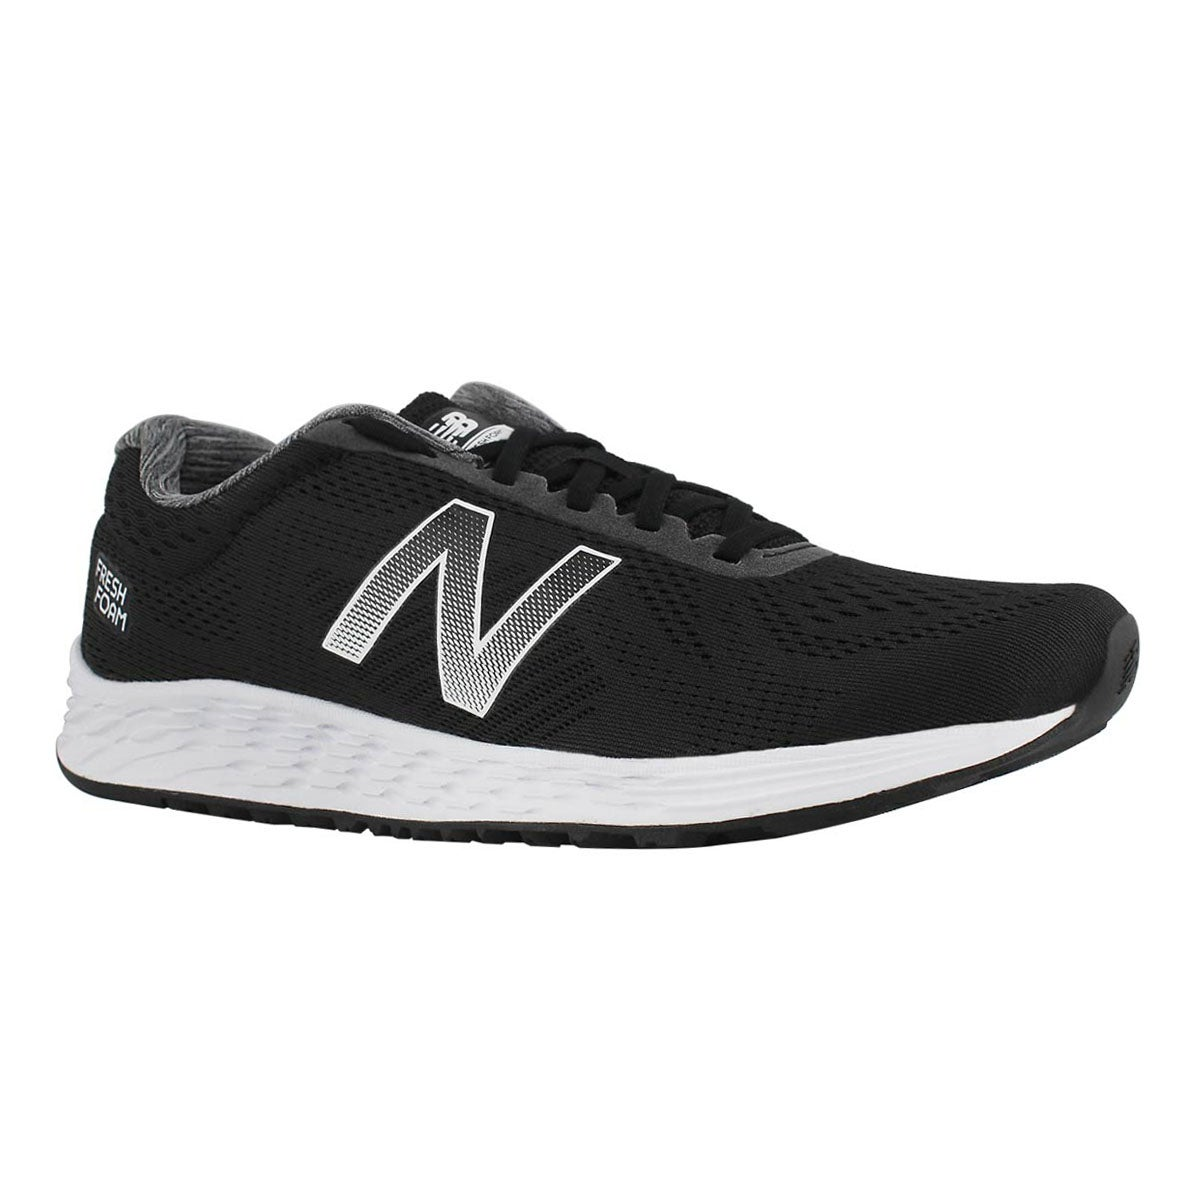 Mns Arishi blk/wht lace up running shoe